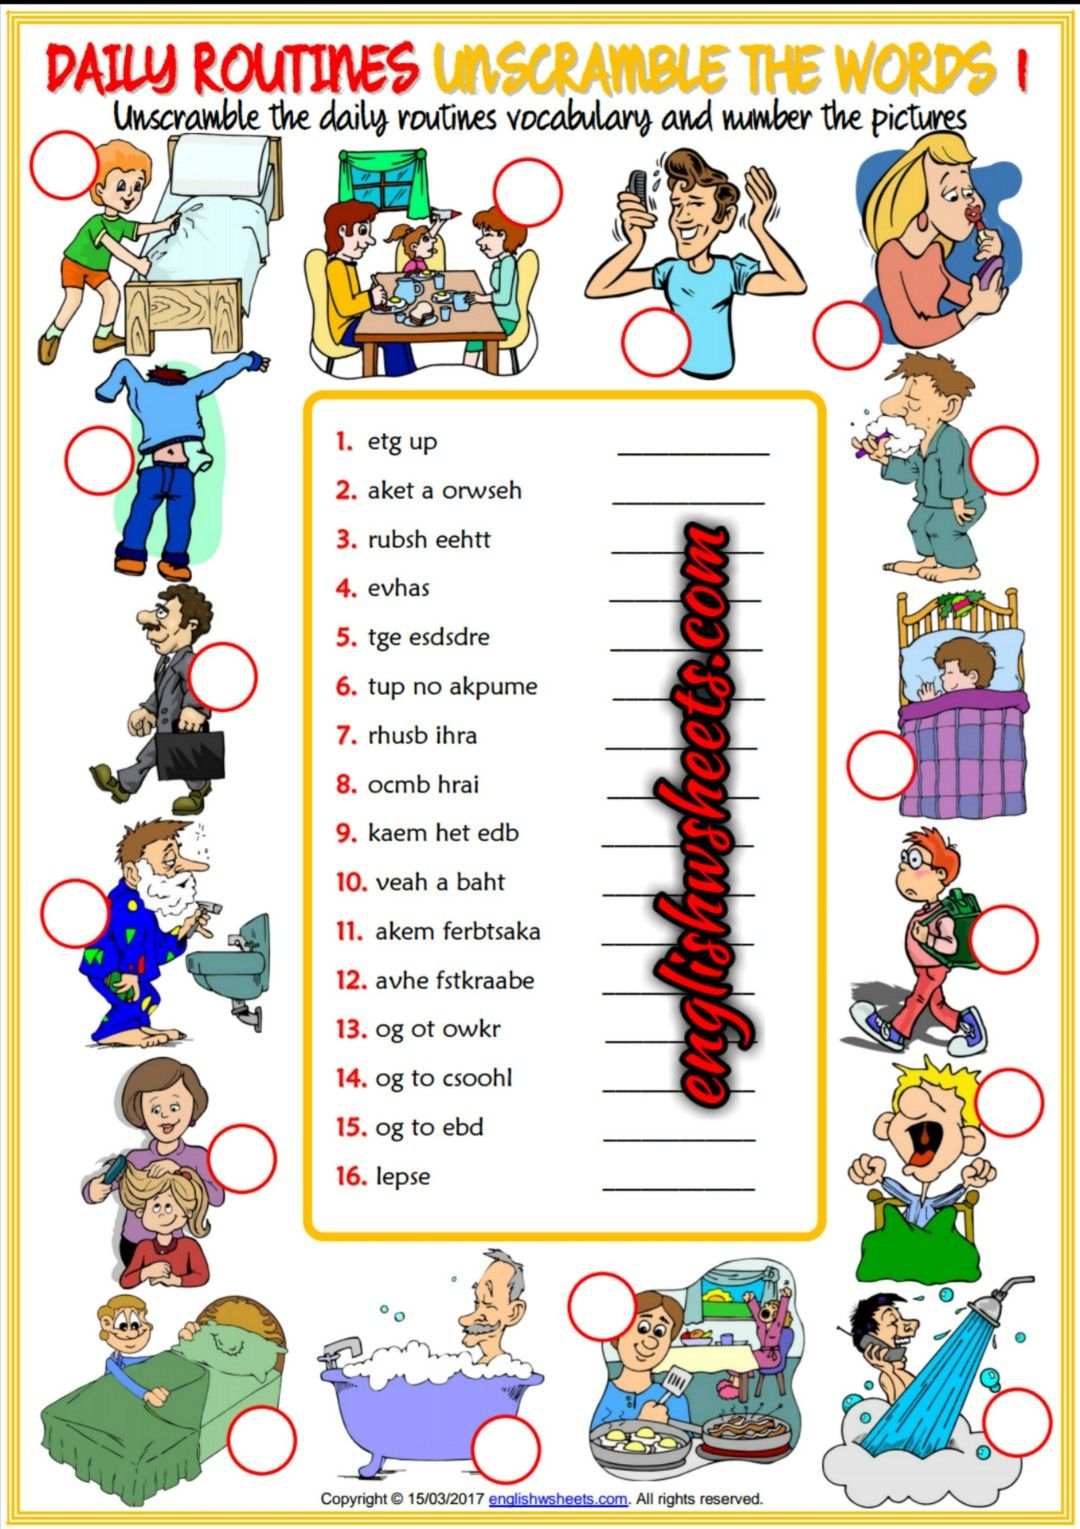 Daily Routines Esl Printable Unscramble The Words Worksheets For Kids Daily Routines D